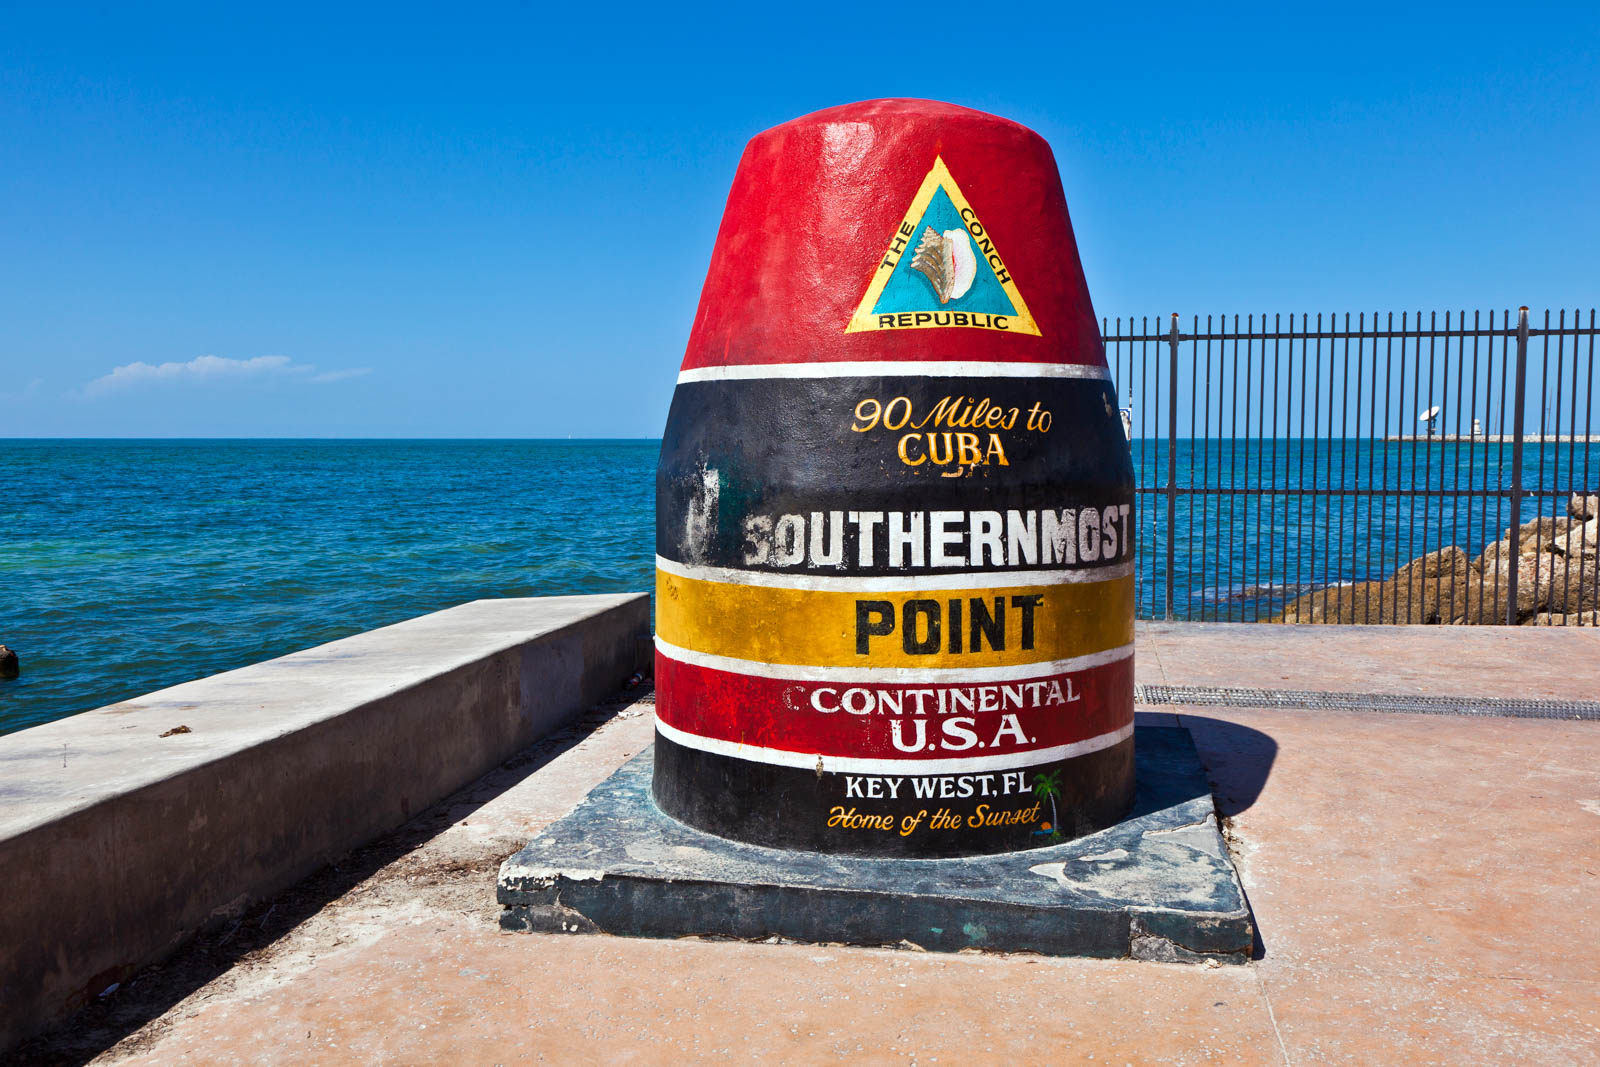 Southernmost Point marker, Key West, Florida. This marker is one of the most visited things to do in South Florida and one of the cheap things to do in Florida too.